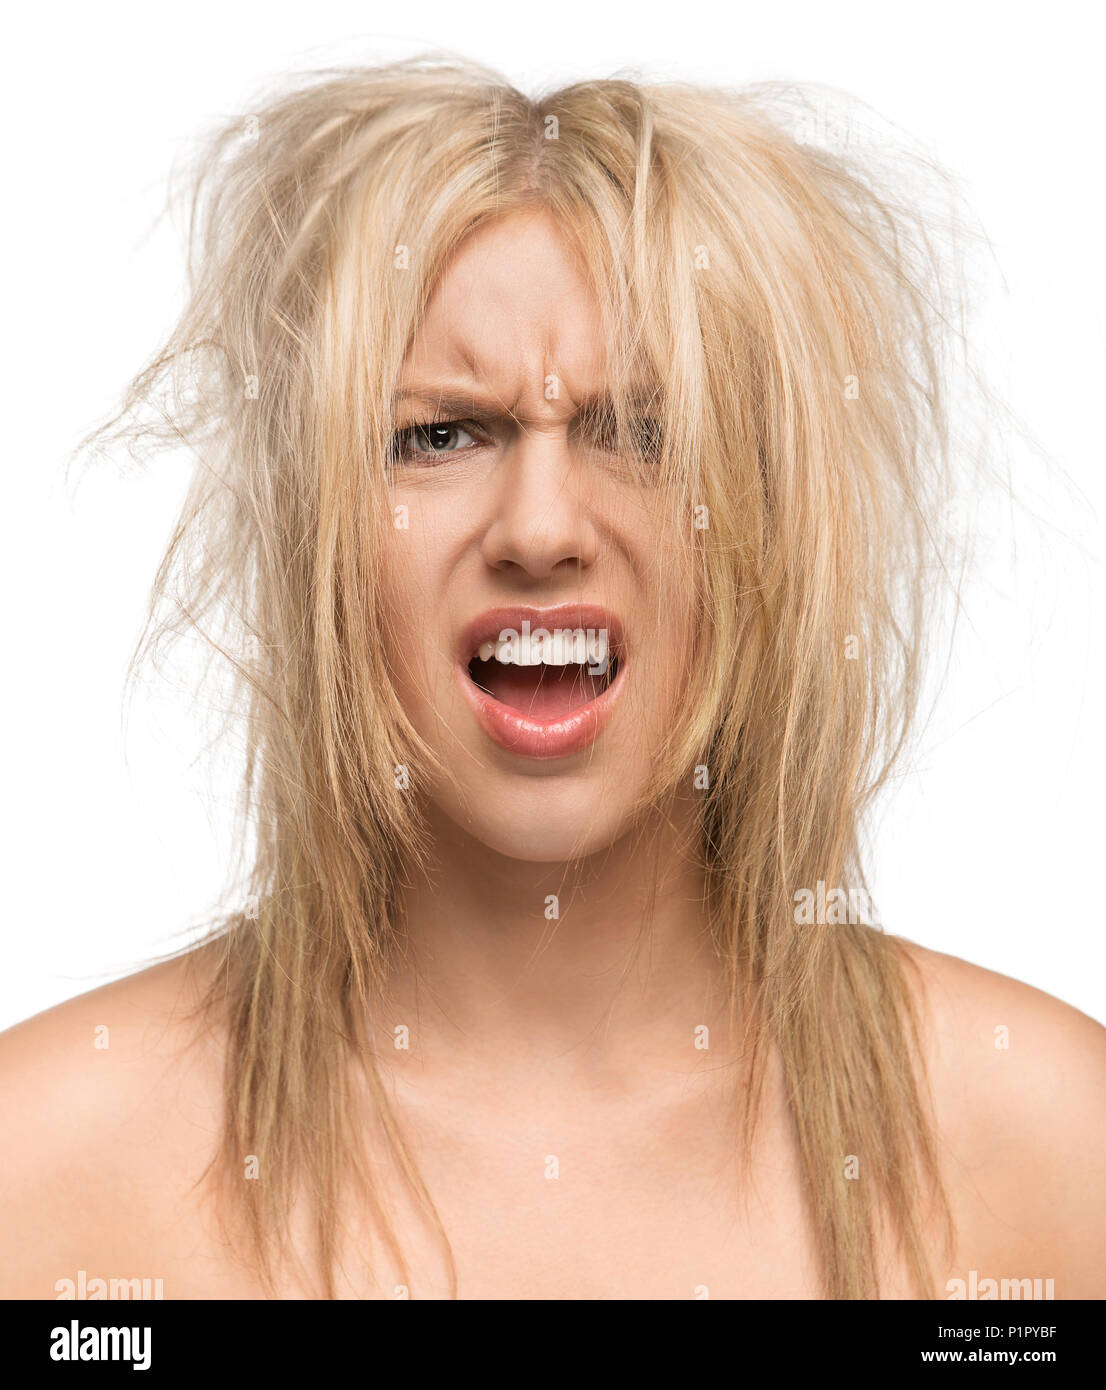 Bad Hair Day Funny Concept Stock Photo